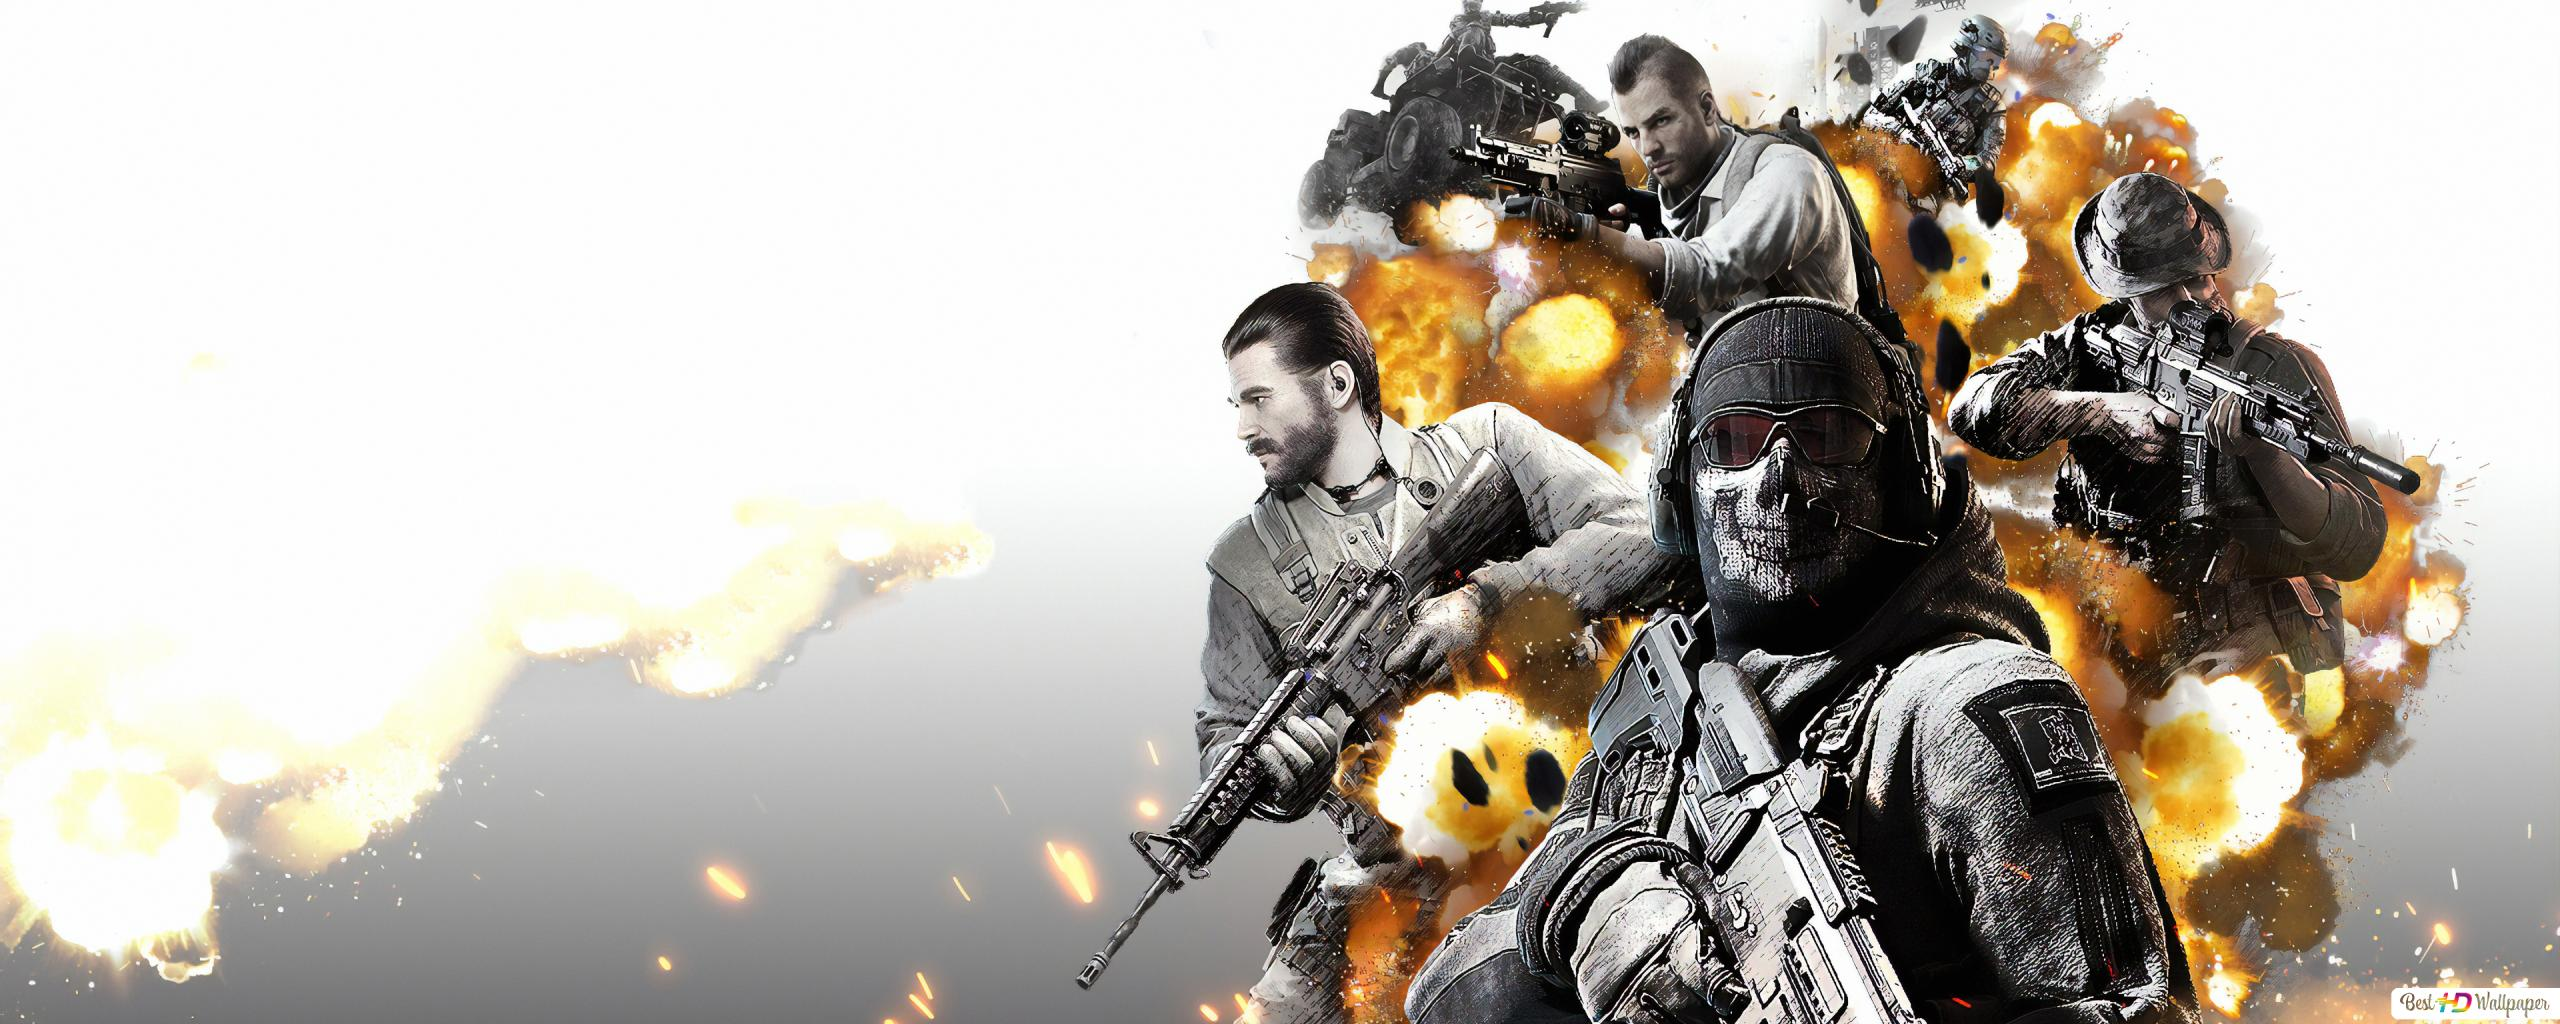 call of duty mobile wallpaper hd download